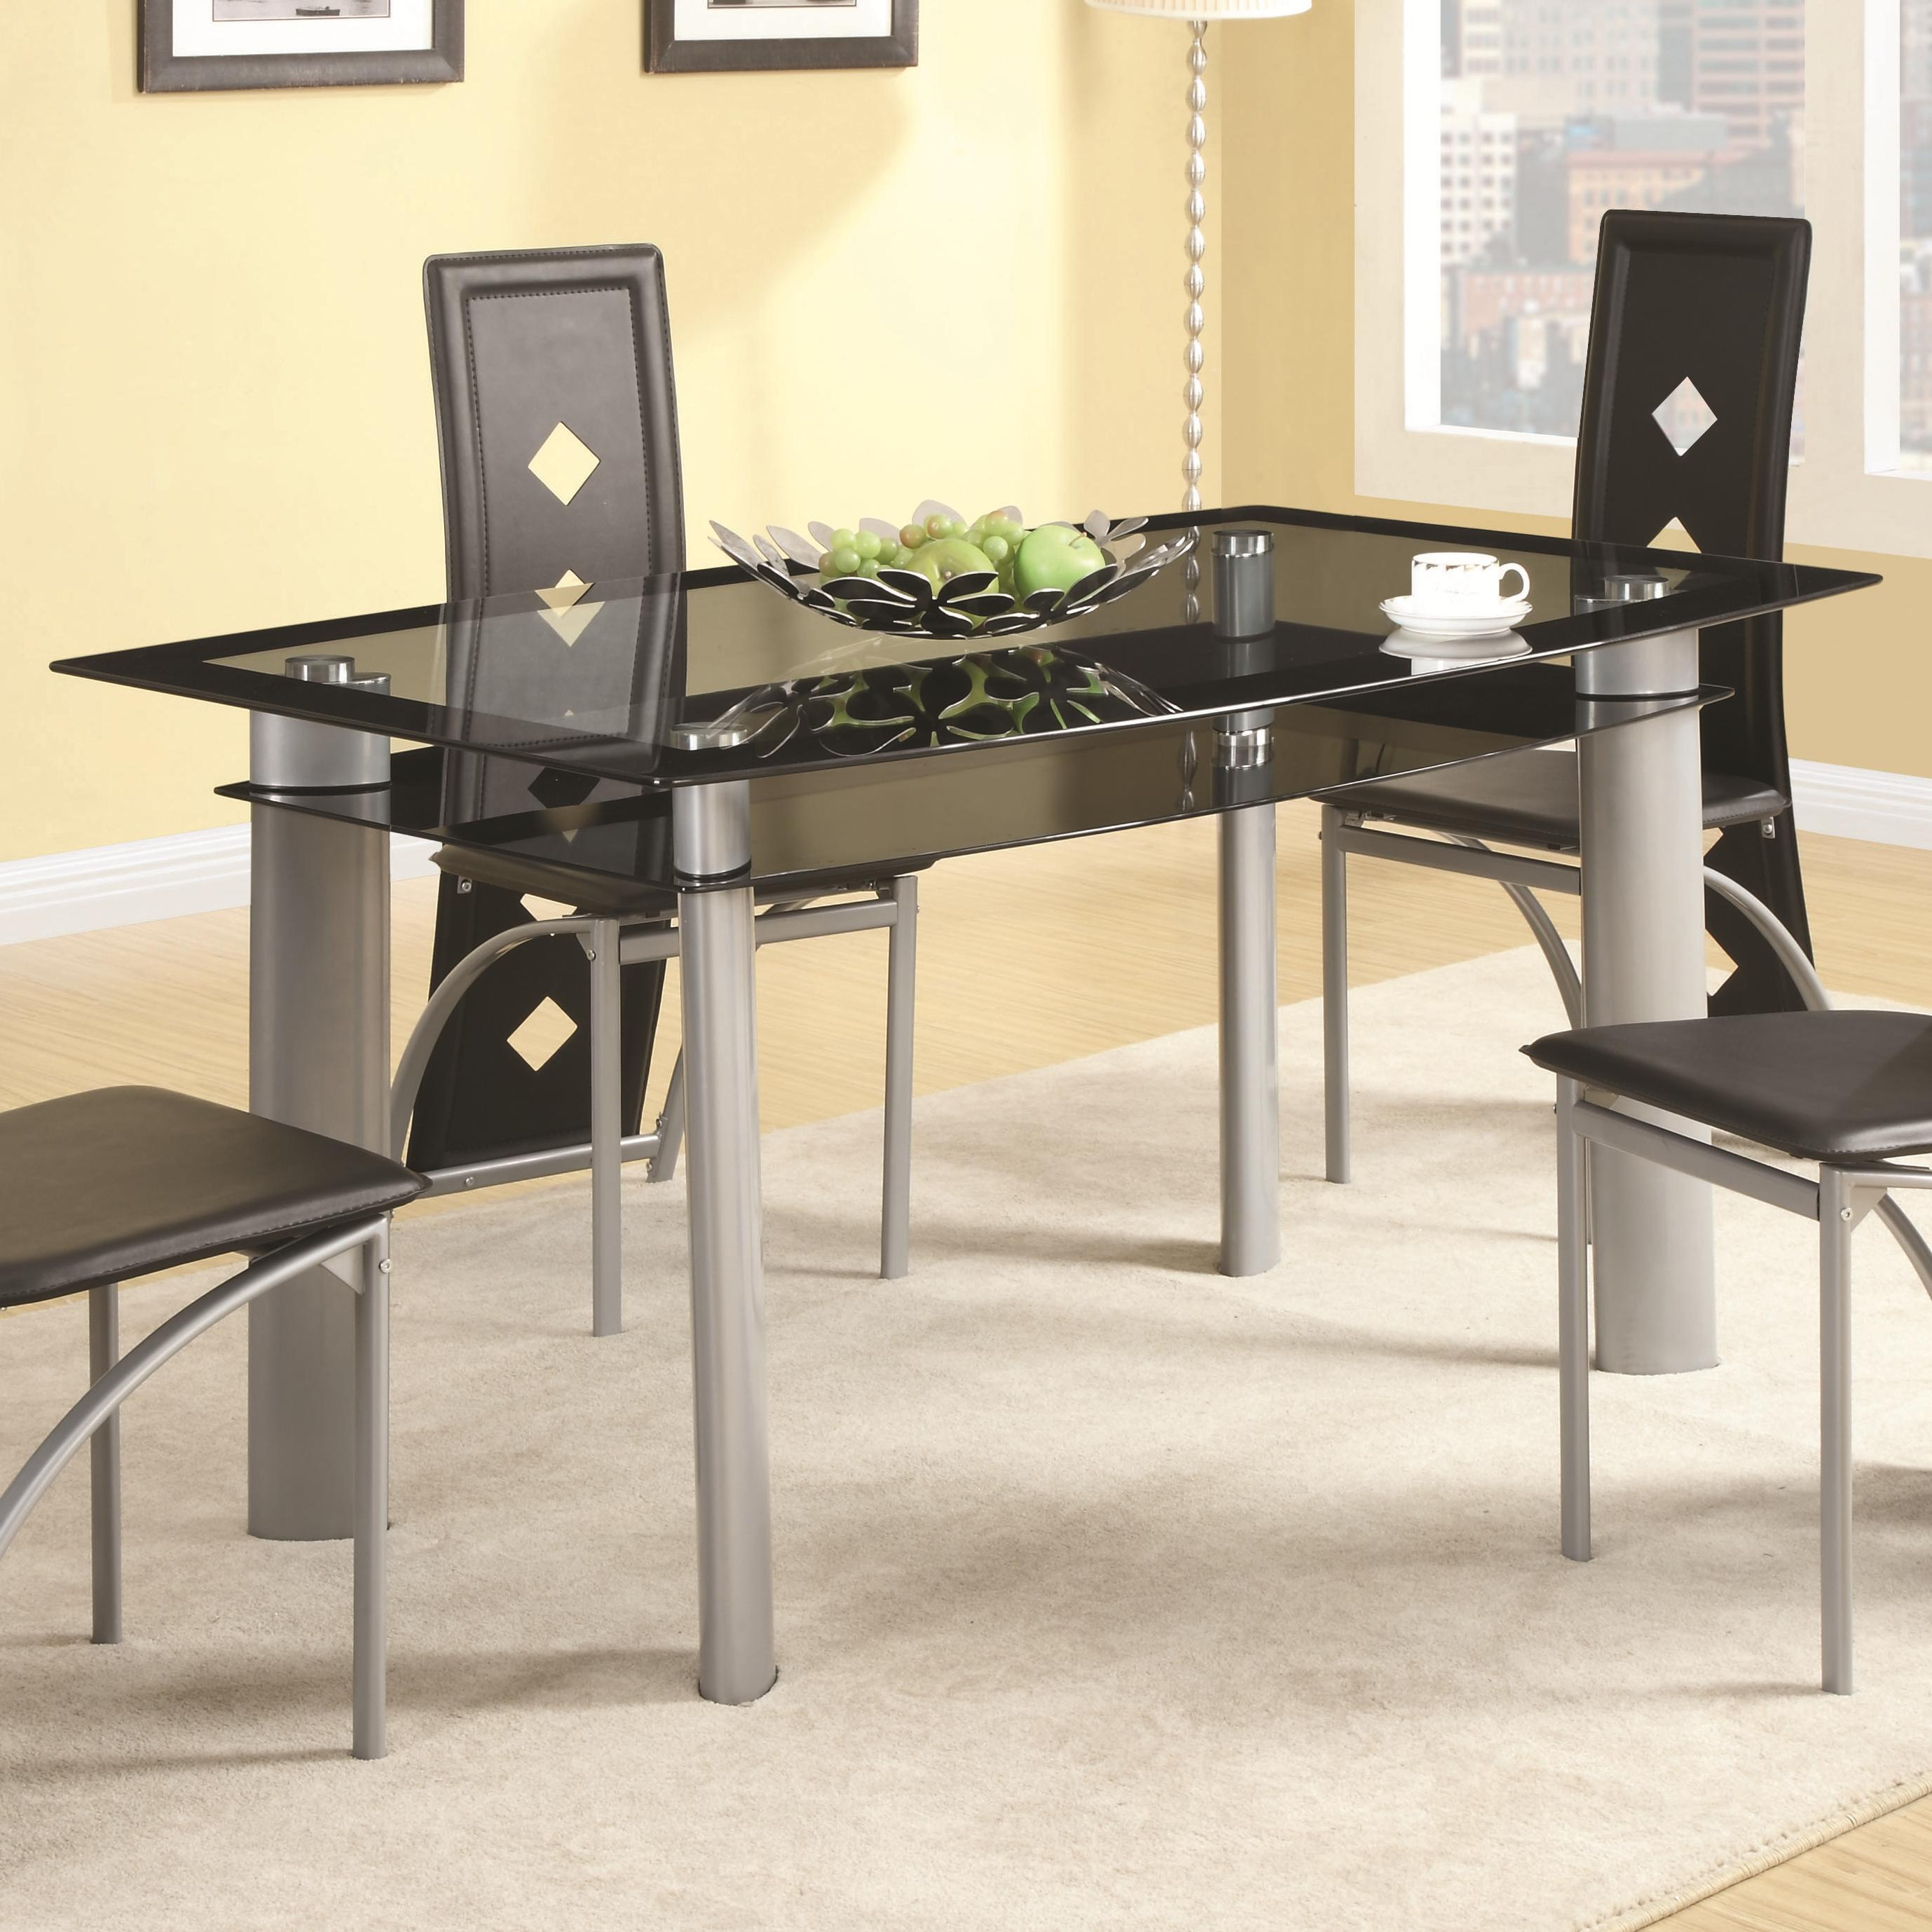 Coaster Furniture Fontana Dining Table Click To Enlarge ...